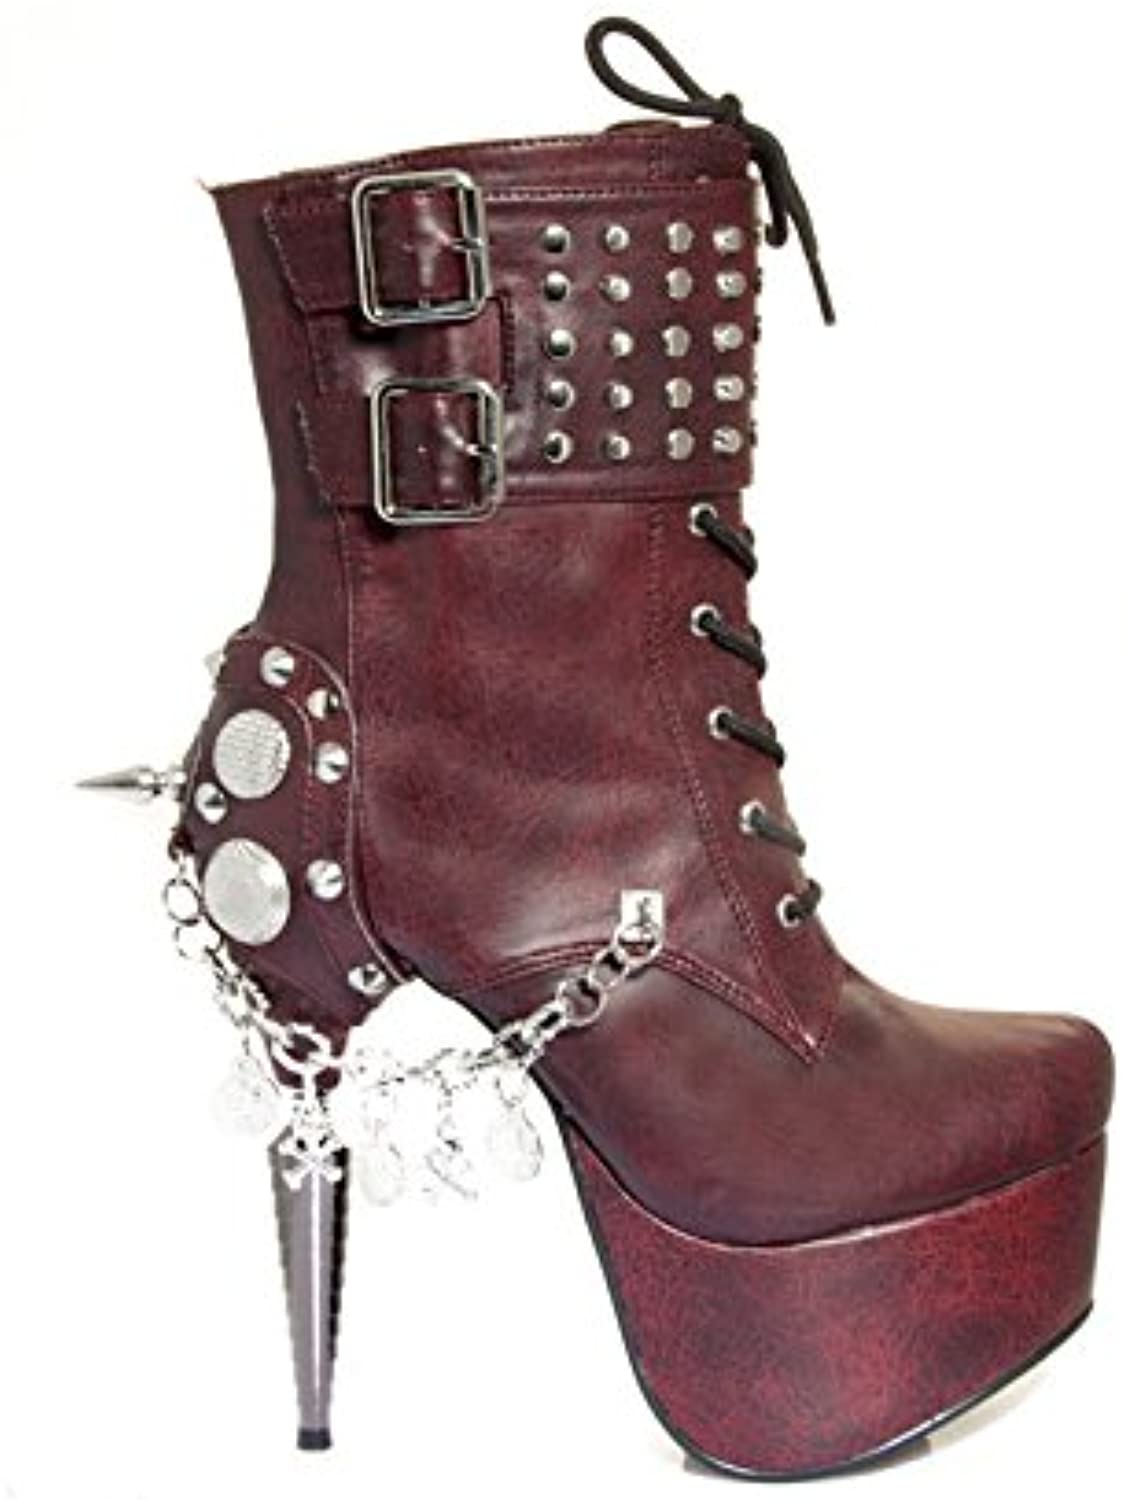 Hades shoes H-Artemis Rhino Collection Heel 9 Burgundy